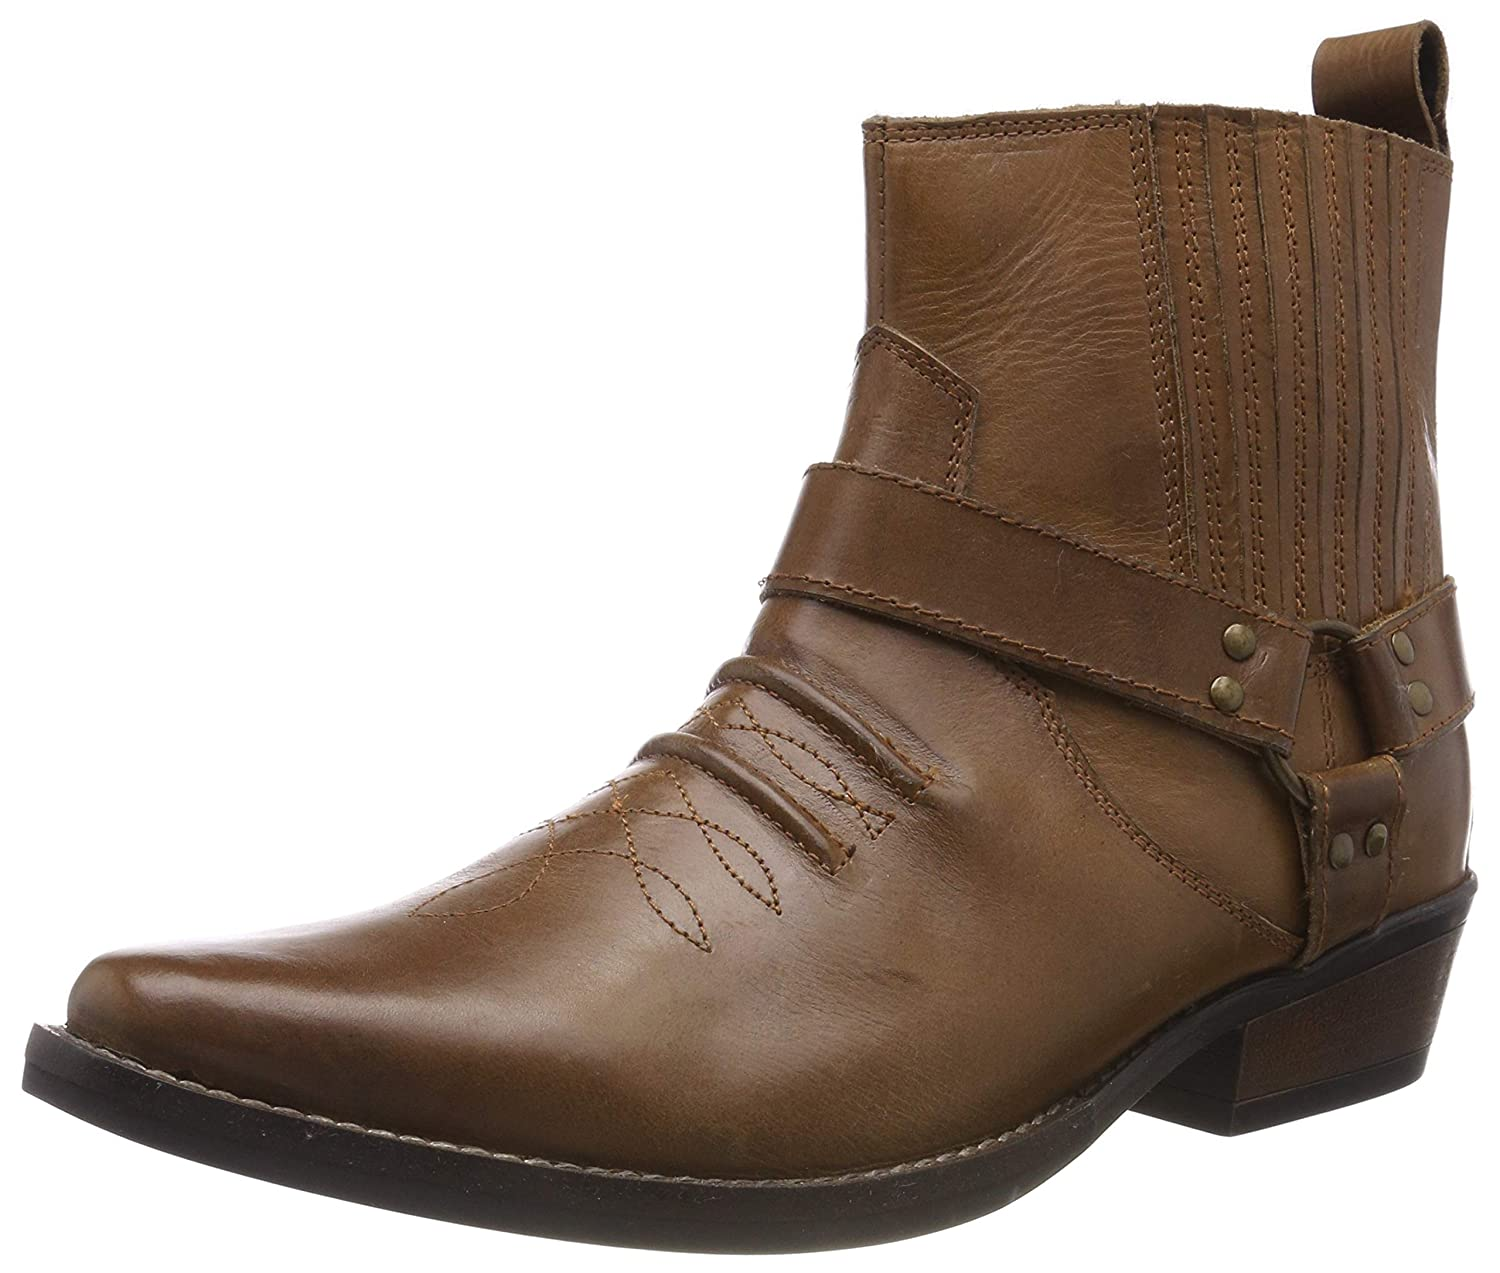 Mens Cowboy Leather Ankle Boots Biker Boots